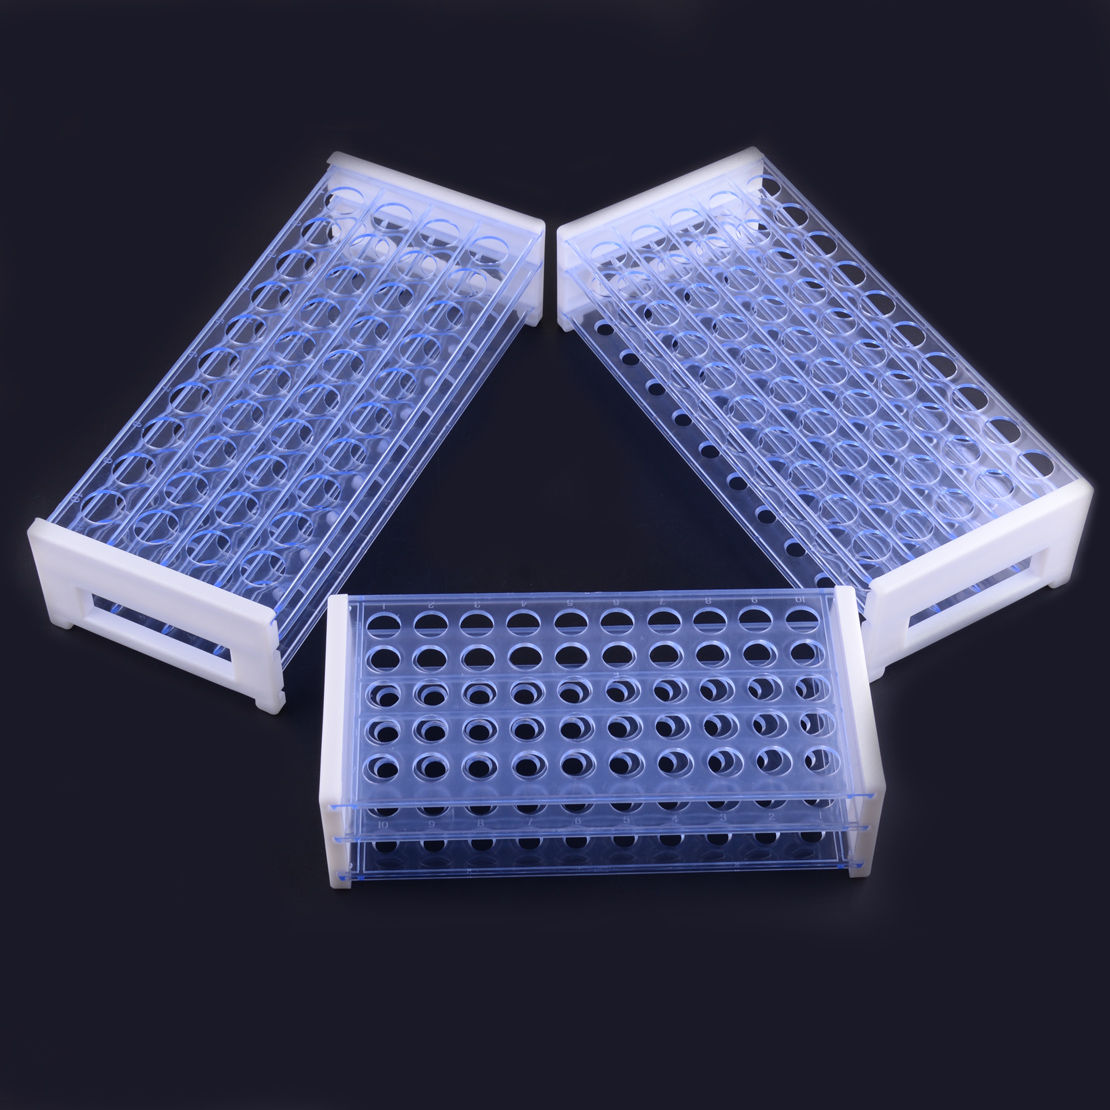 LETAOSK 3 Layers Plastic Test Lab Tube Rack Holder Centrifugal Pipe Support Burette Stand Laboratory For 13/16/18mm